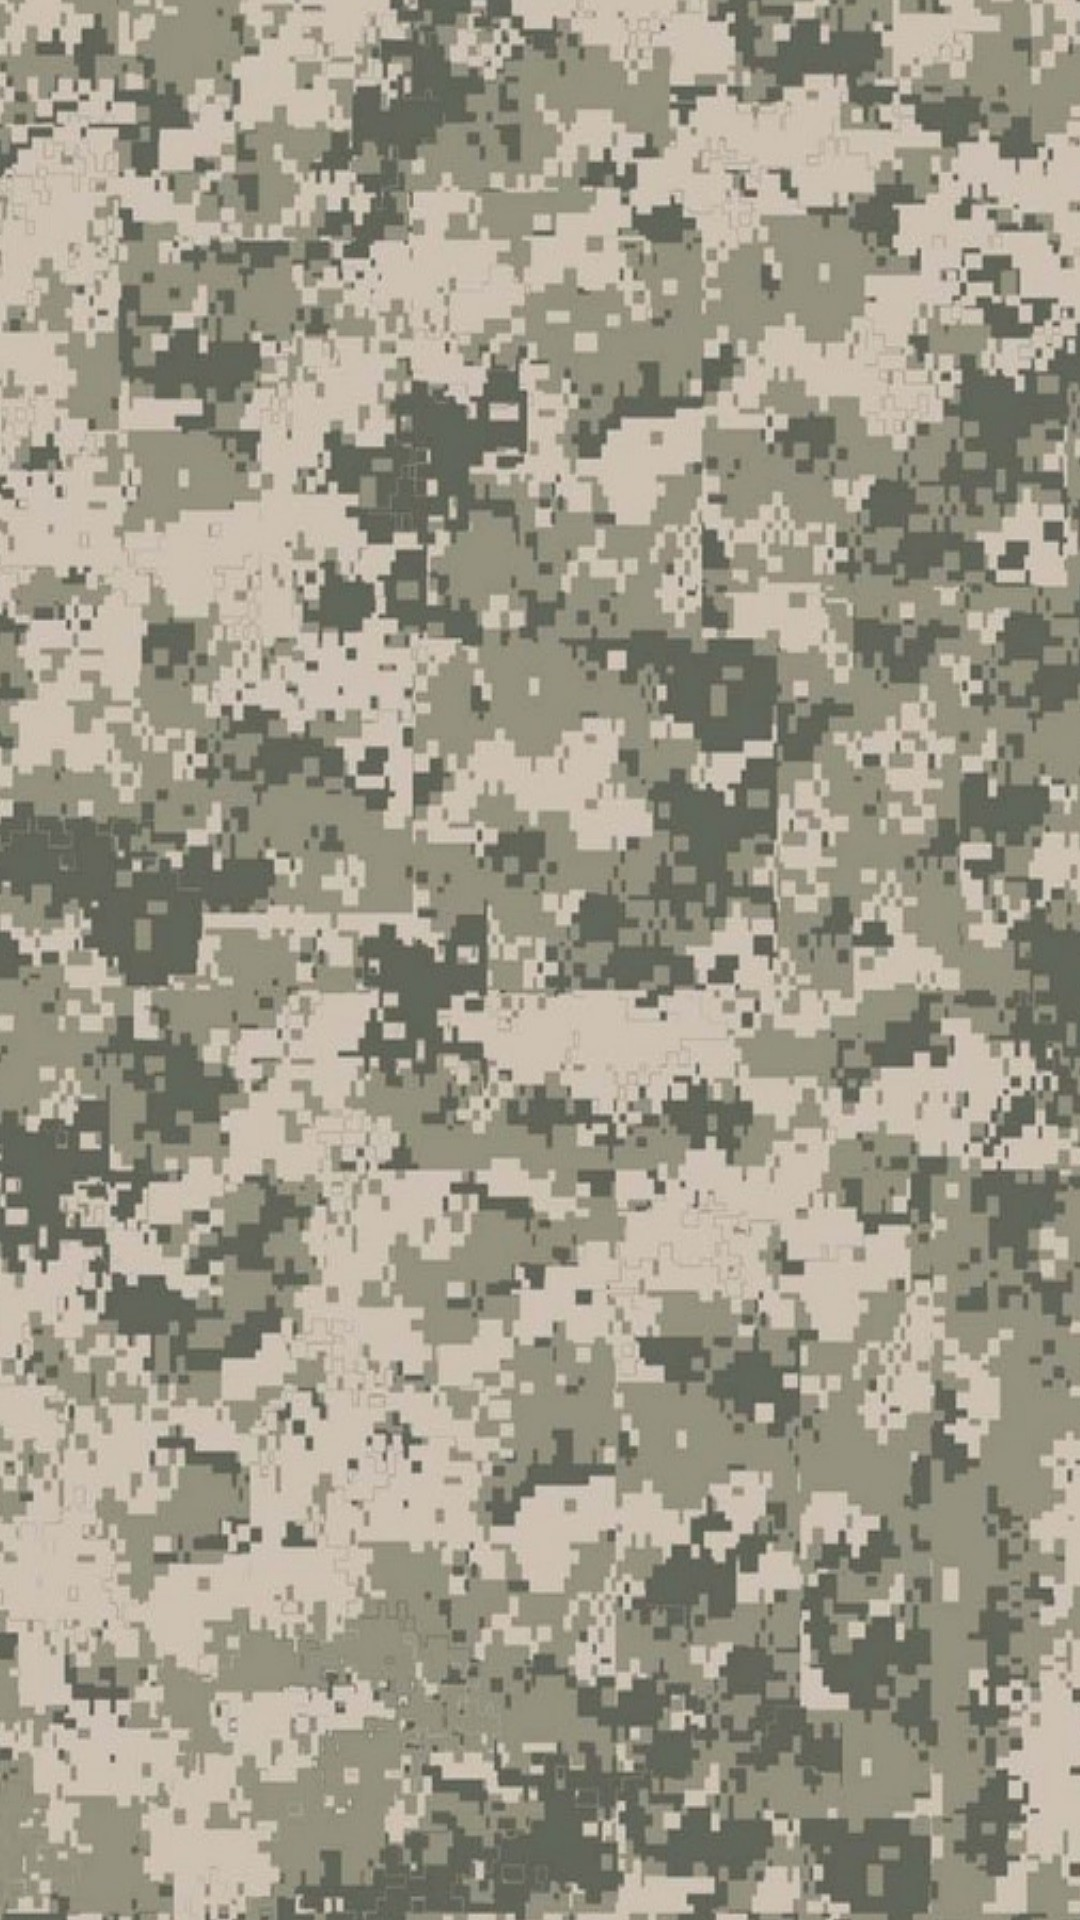 1080x1920 Camouflage Wallpaper For IPhone Or Android Tags Camo Hunting Army